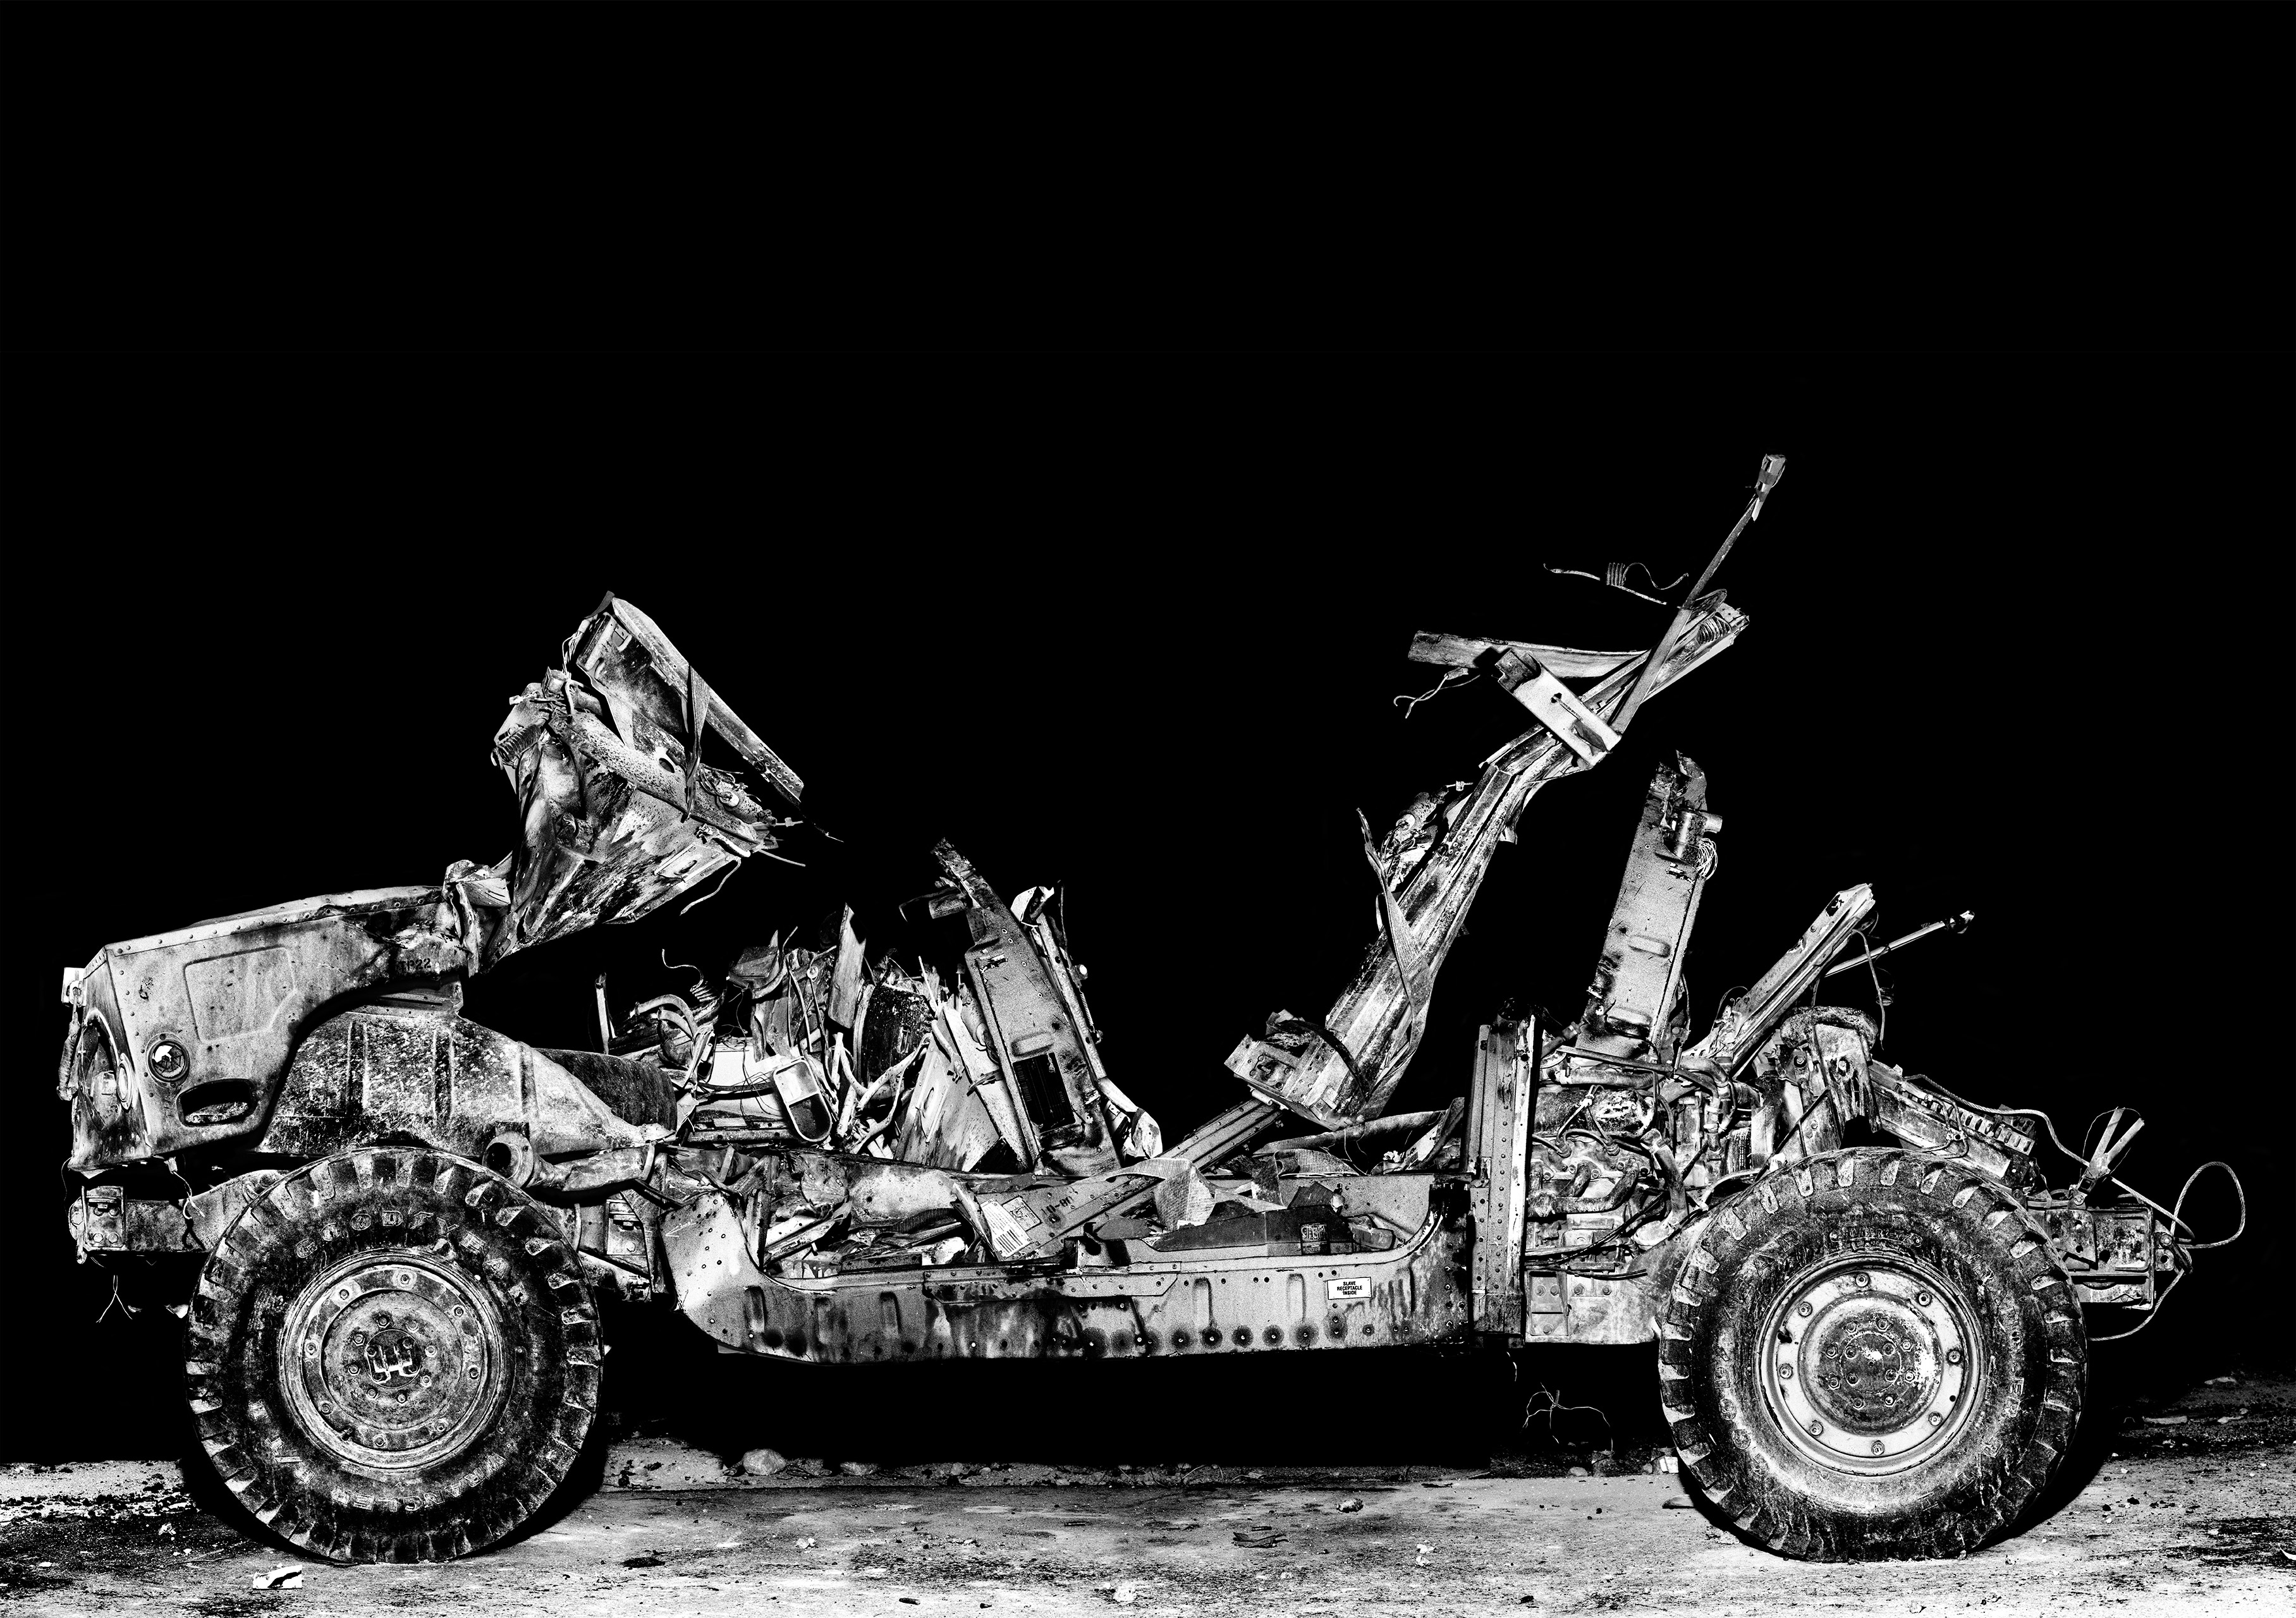 Using special effects, this Hummer                               explodes into flames multiple times a day in                               Medina Wasl, a mock Iraqi town at the NTC.                               Fort Irwin, 2008.